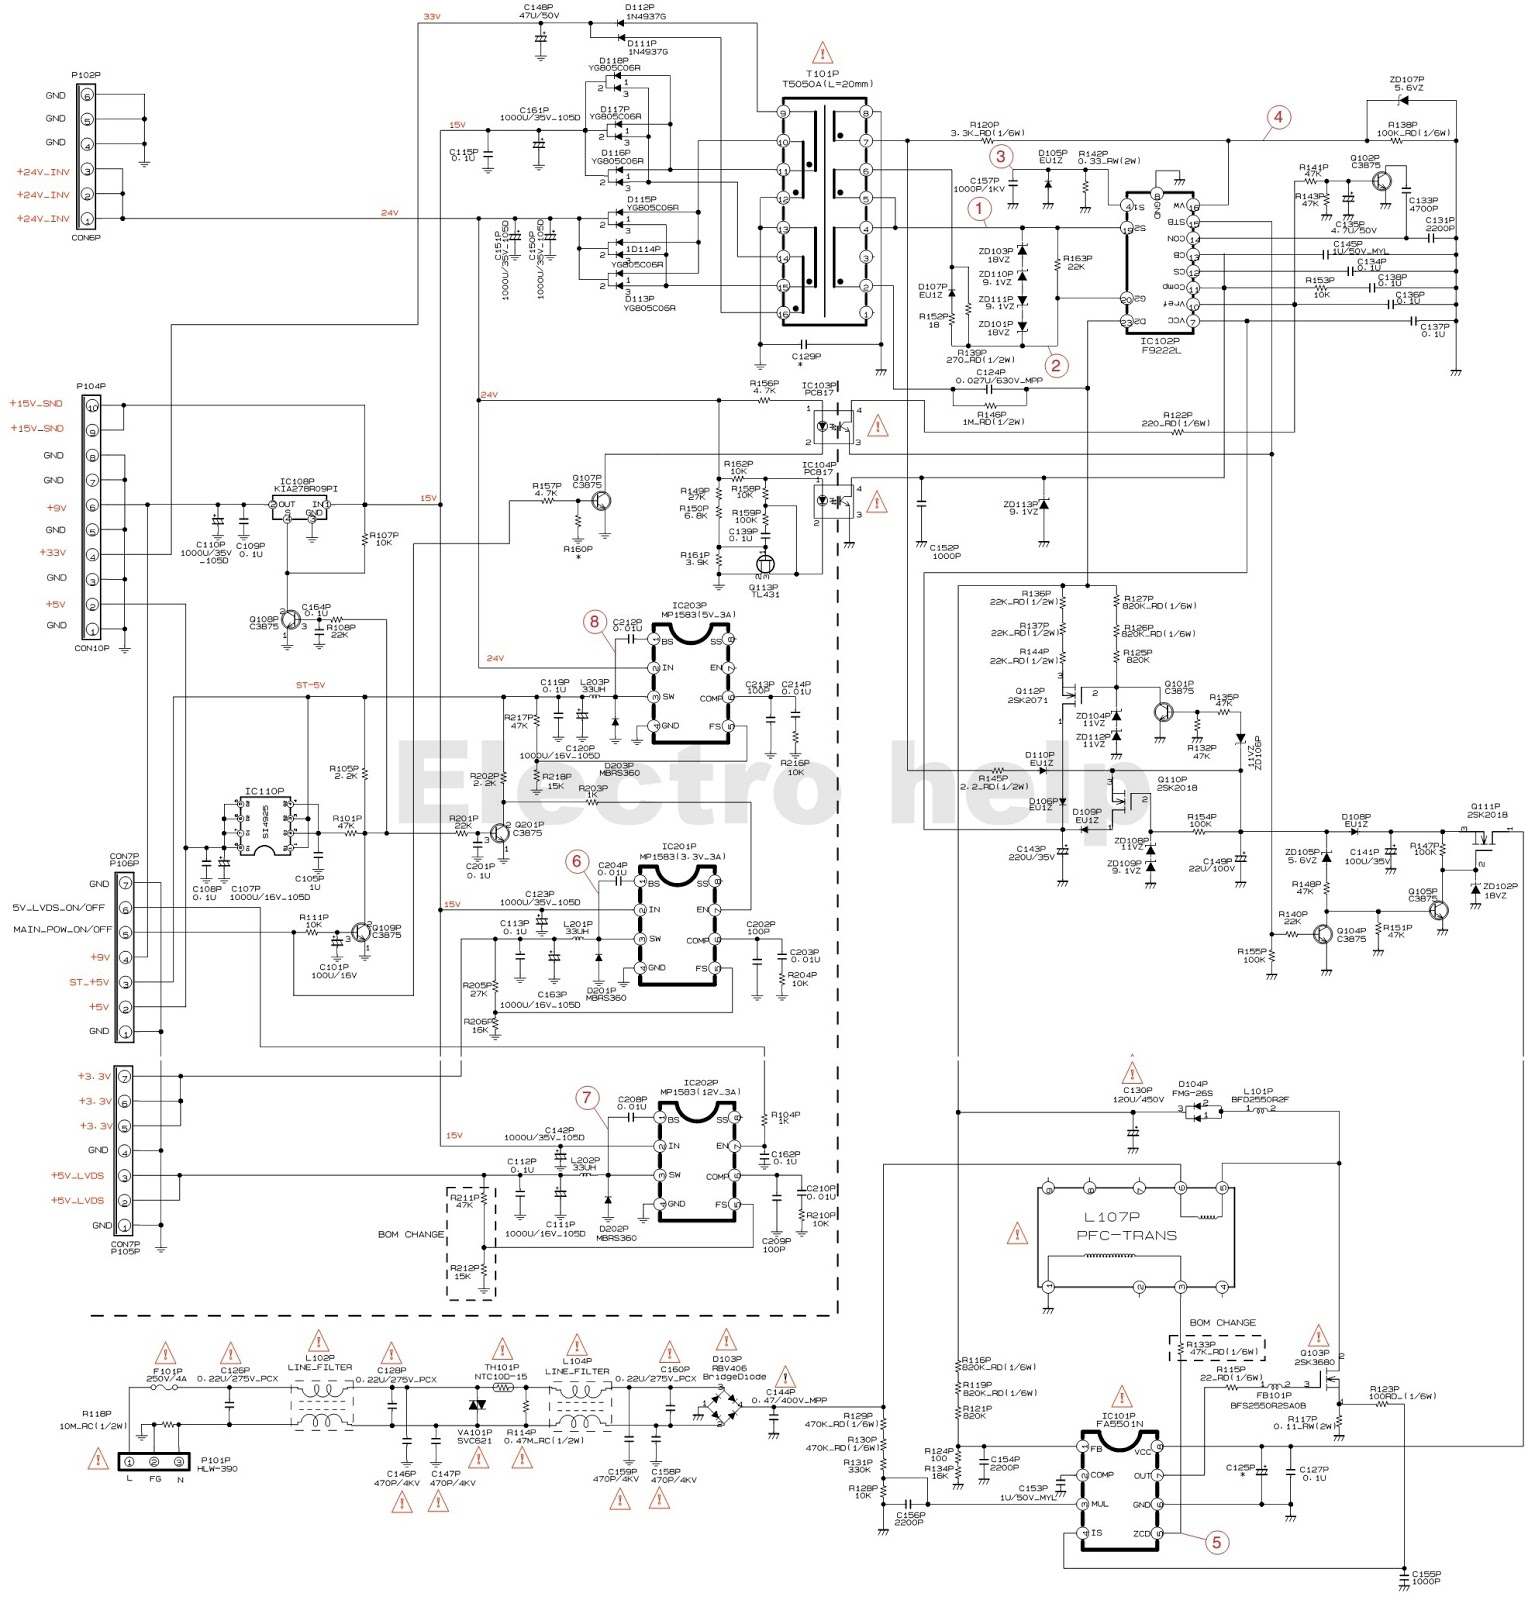 small resolution of john deere 245 wiring diagram wiring schematic diagram 94john deere 245 wiring diagram wiring library john